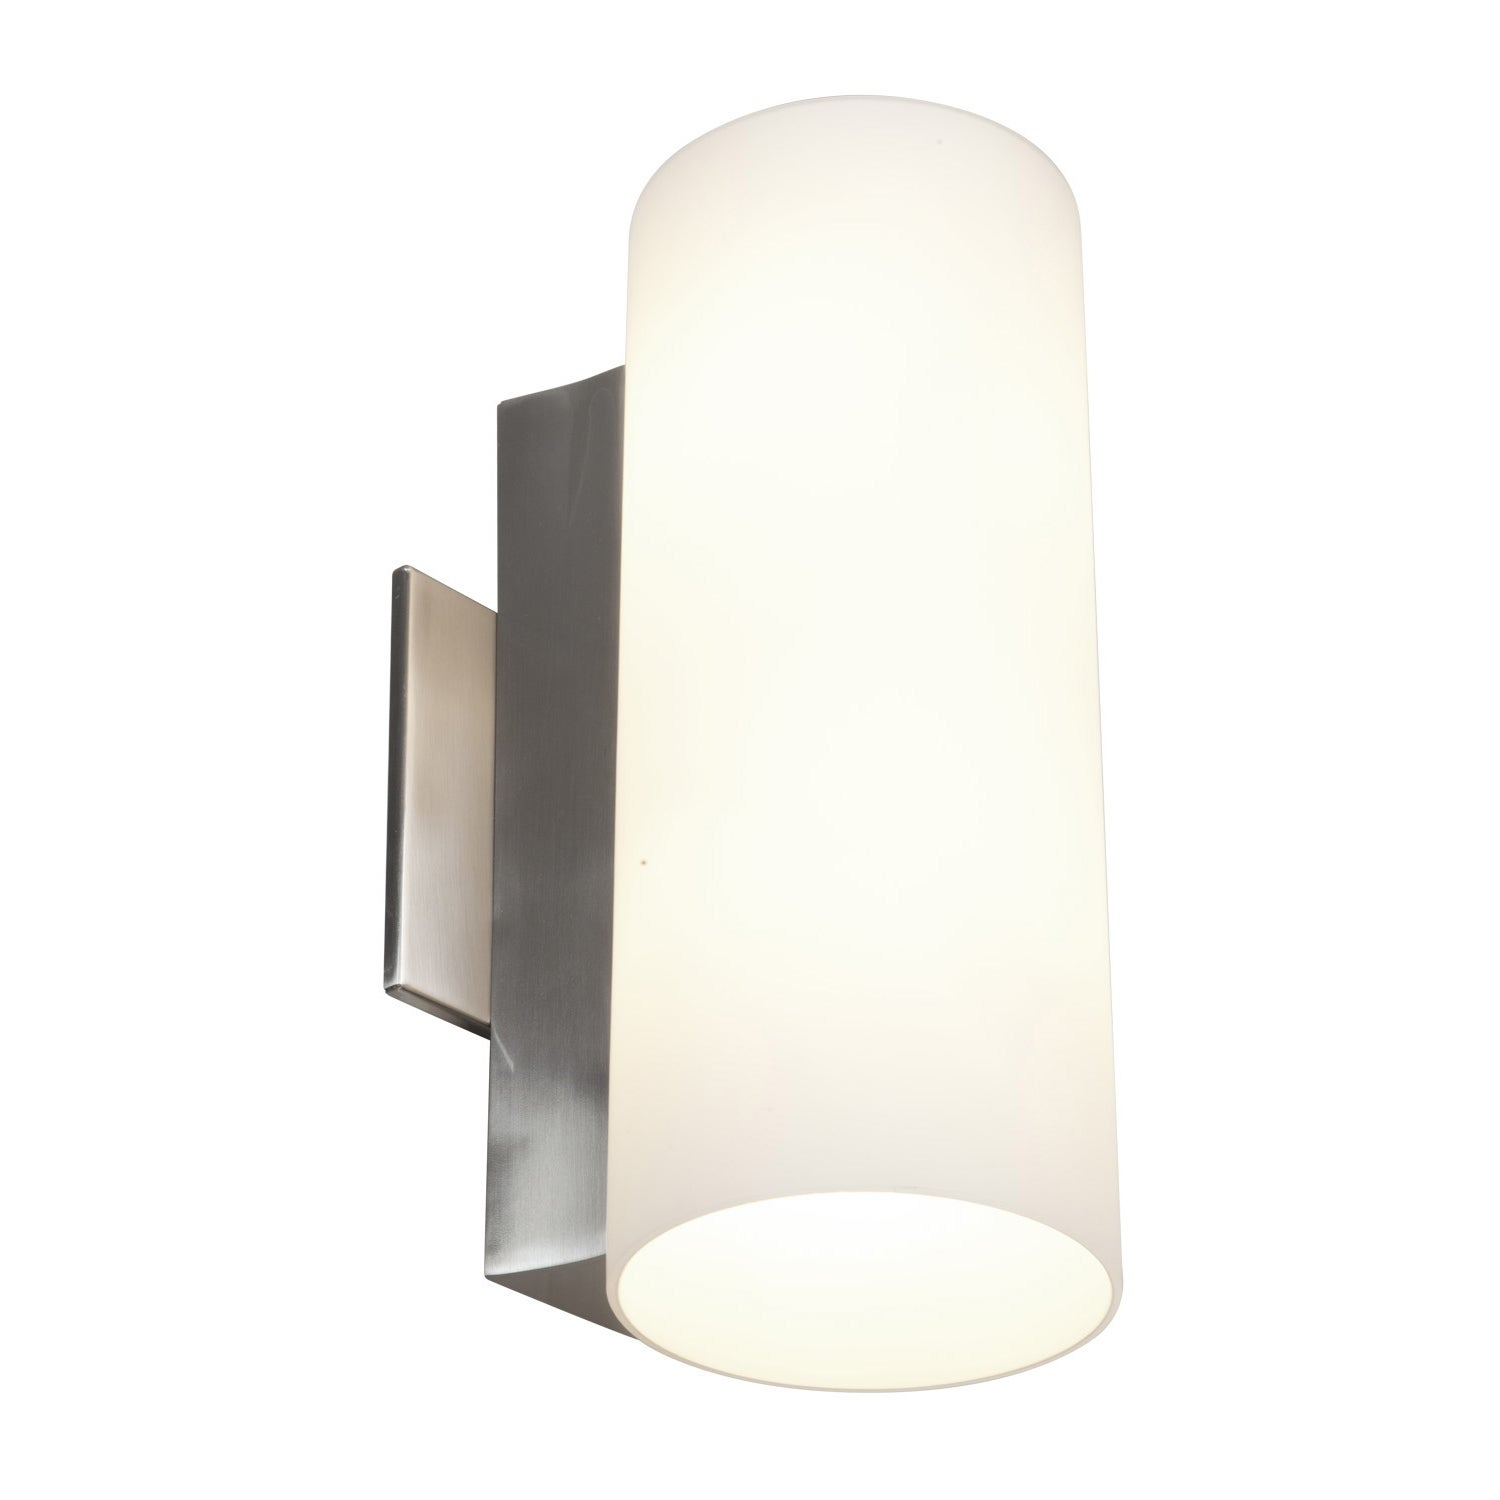 wall sconce overstock shopping top rated access sconces vanities